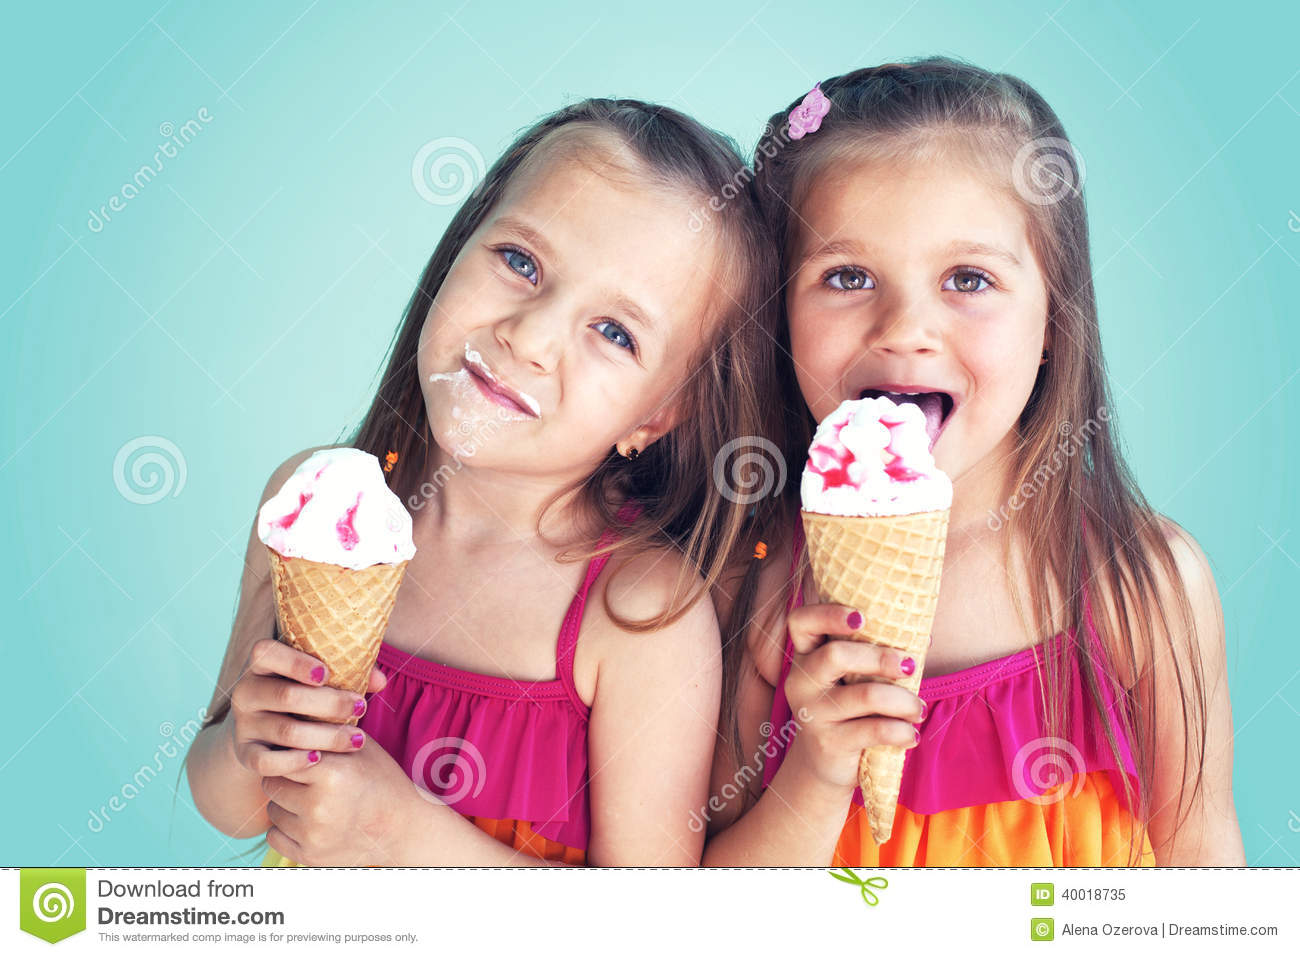 Kid Eating Ice Cream With Friends